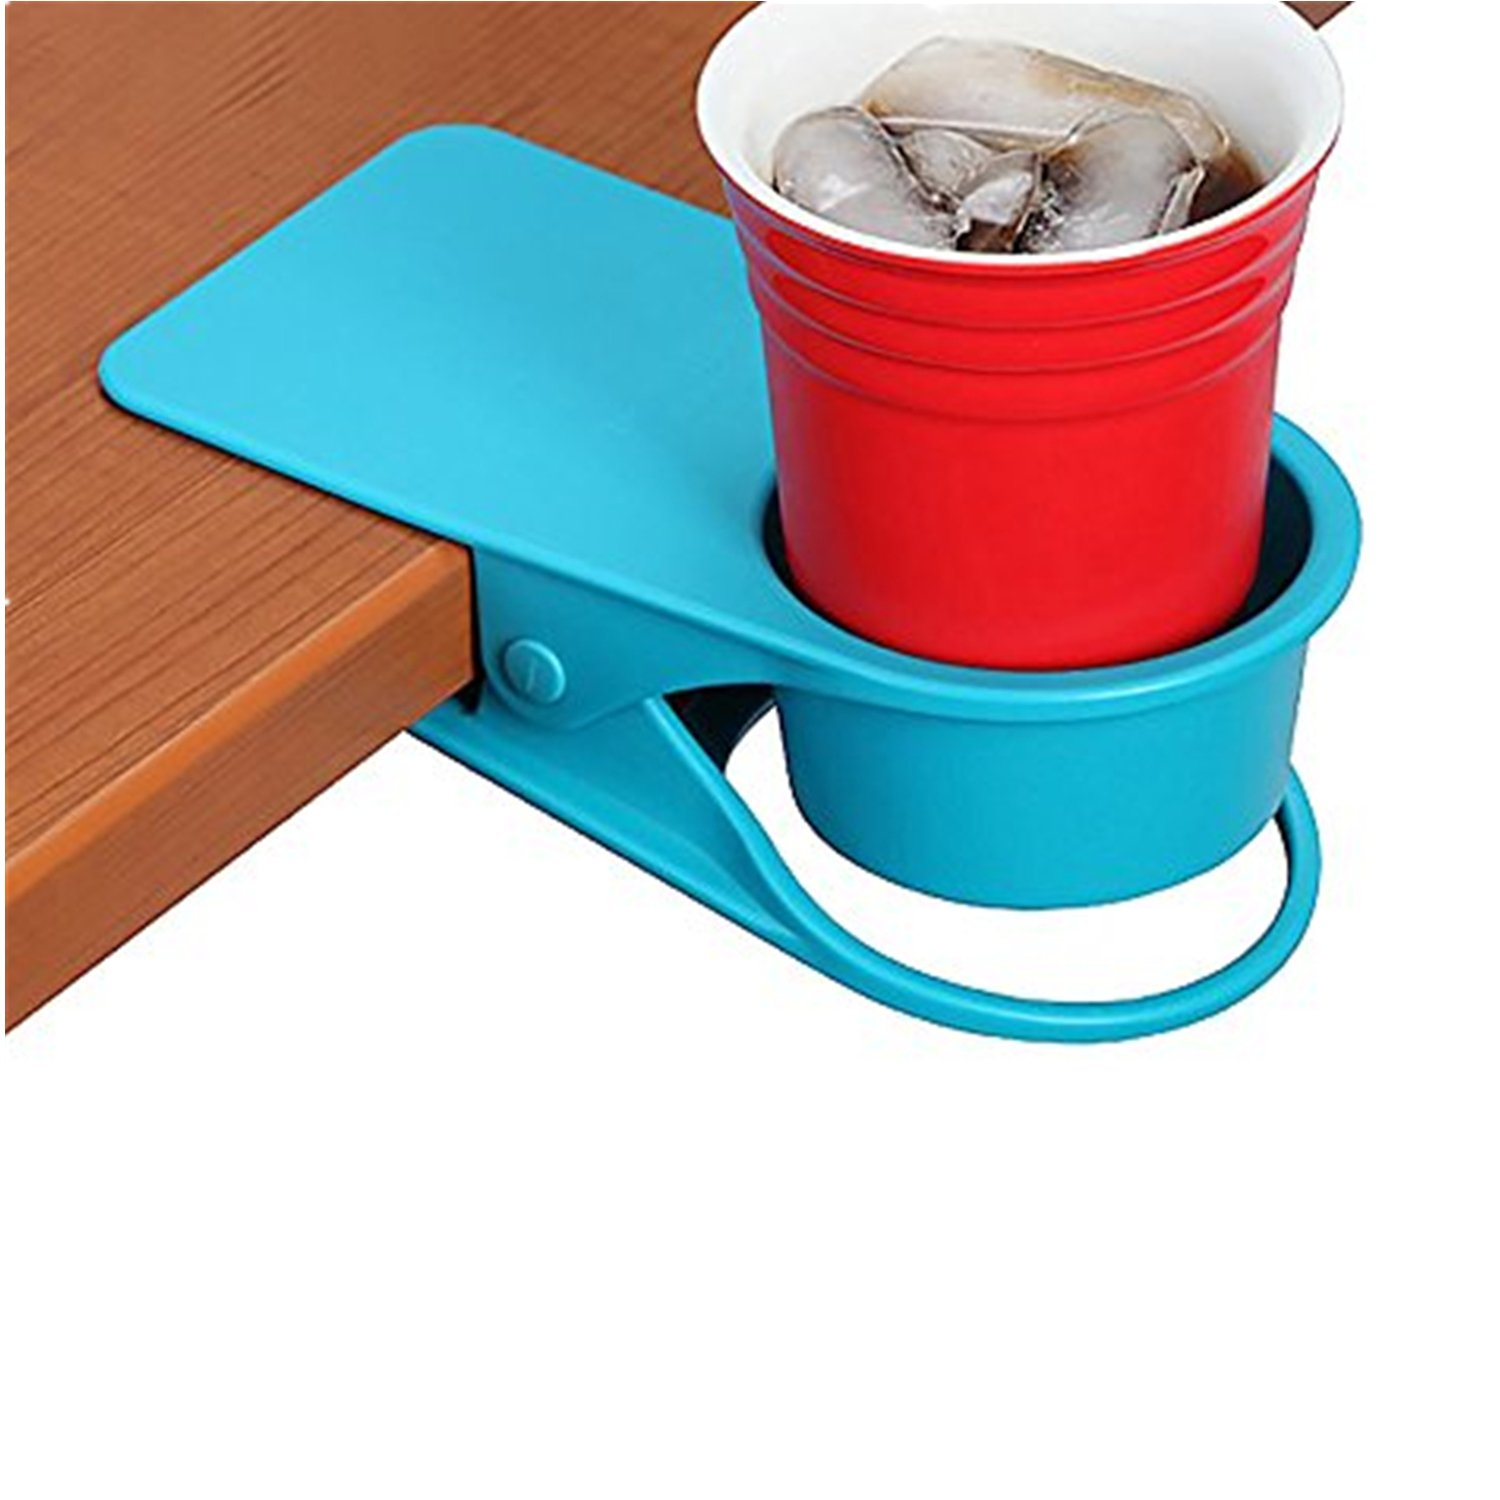 Mai Poetry Mai Poetry Drinking Cup Holder Clip,Home Office Table Desk Side Huge Clip Coffee Mug Holder Cup Saucer Design (Blue)